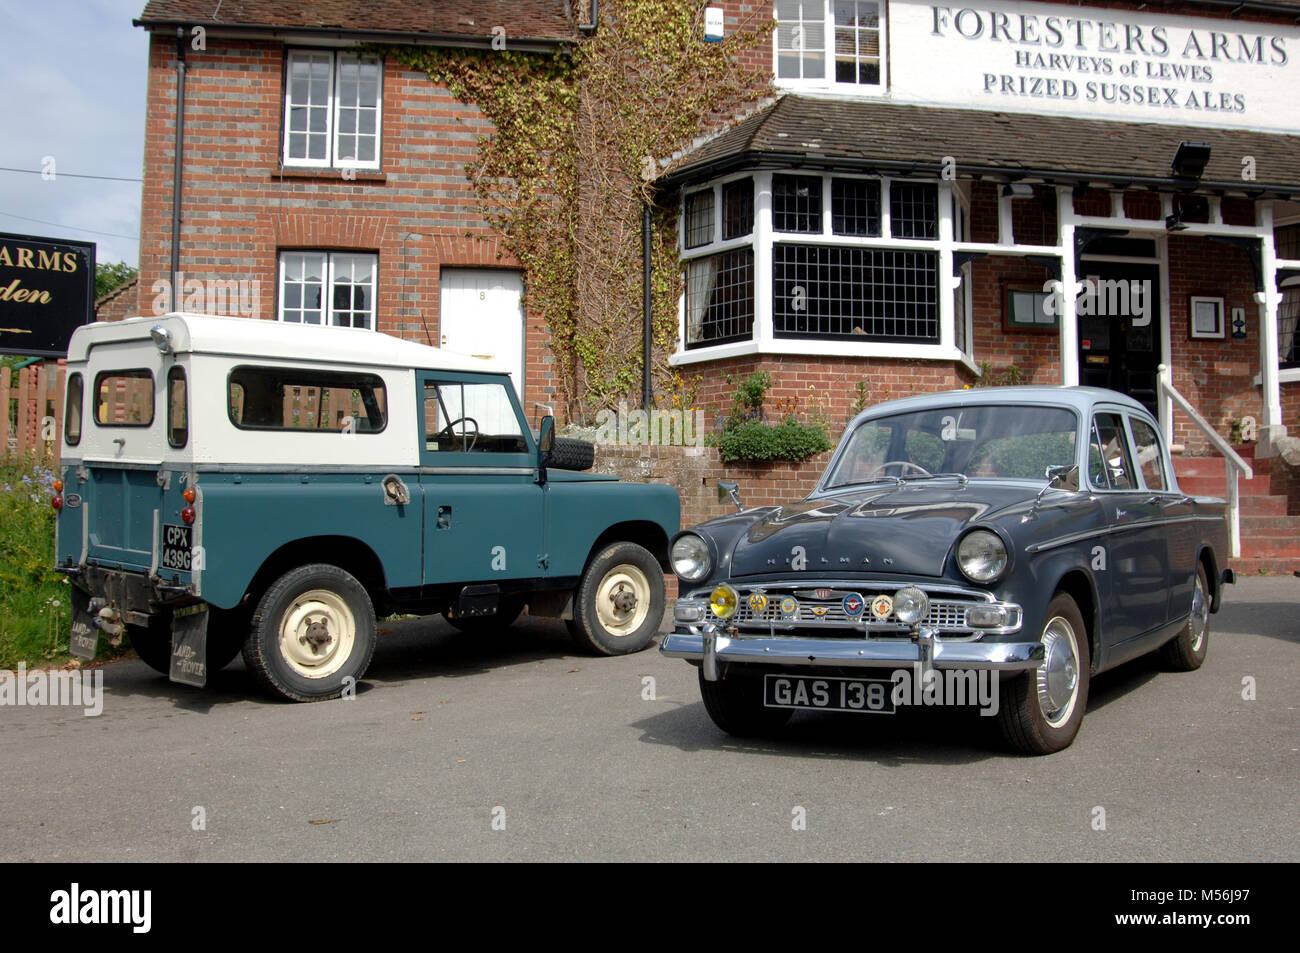 land rover series 3 stock photos land rover series 3 stock images alamy. Black Bedroom Furniture Sets. Home Design Ideas